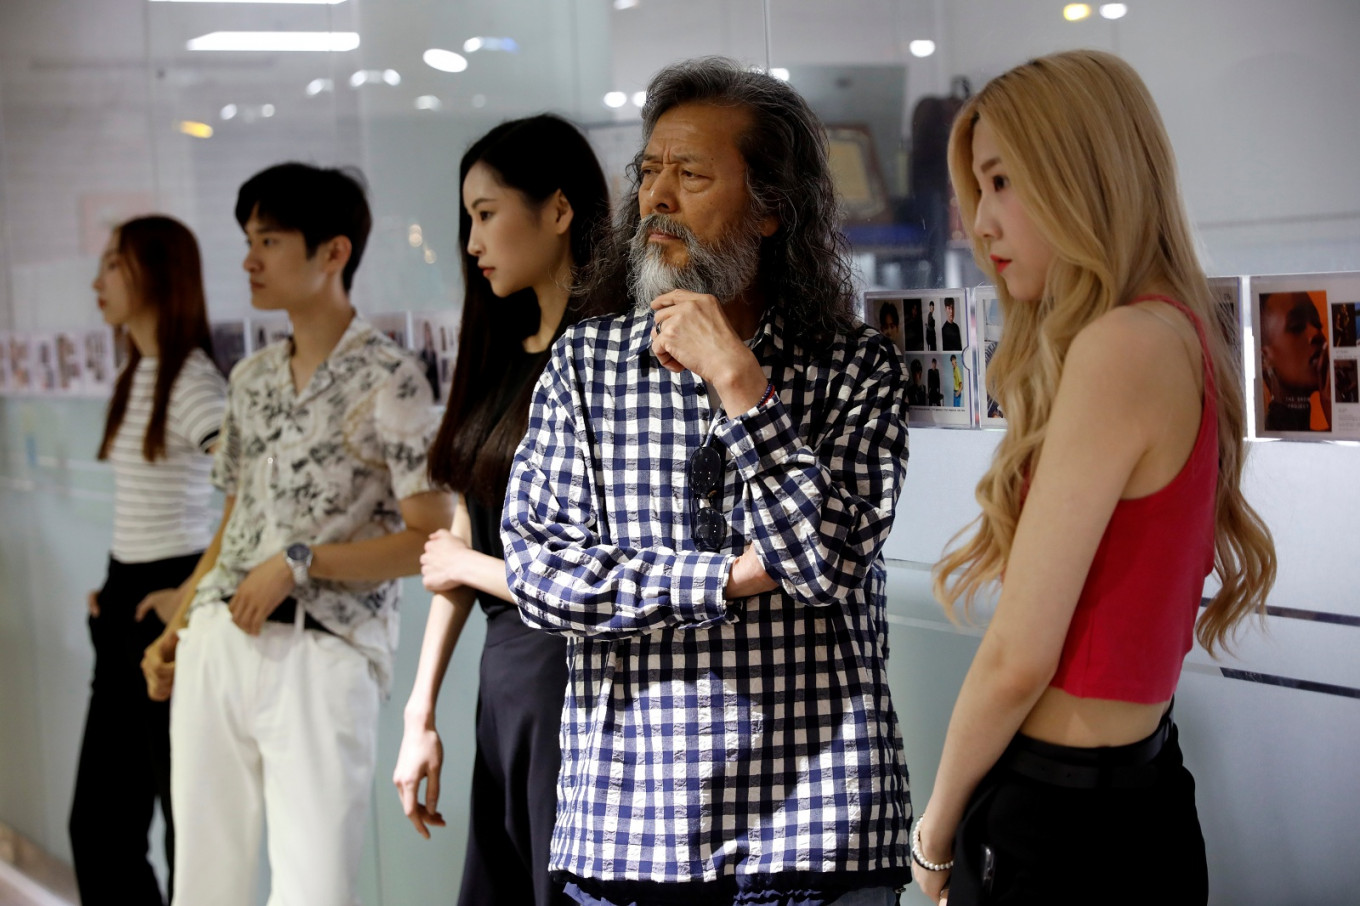 'Don't ask my age': Aging South Koreans begin a new chapter on the catwalk, YouTube